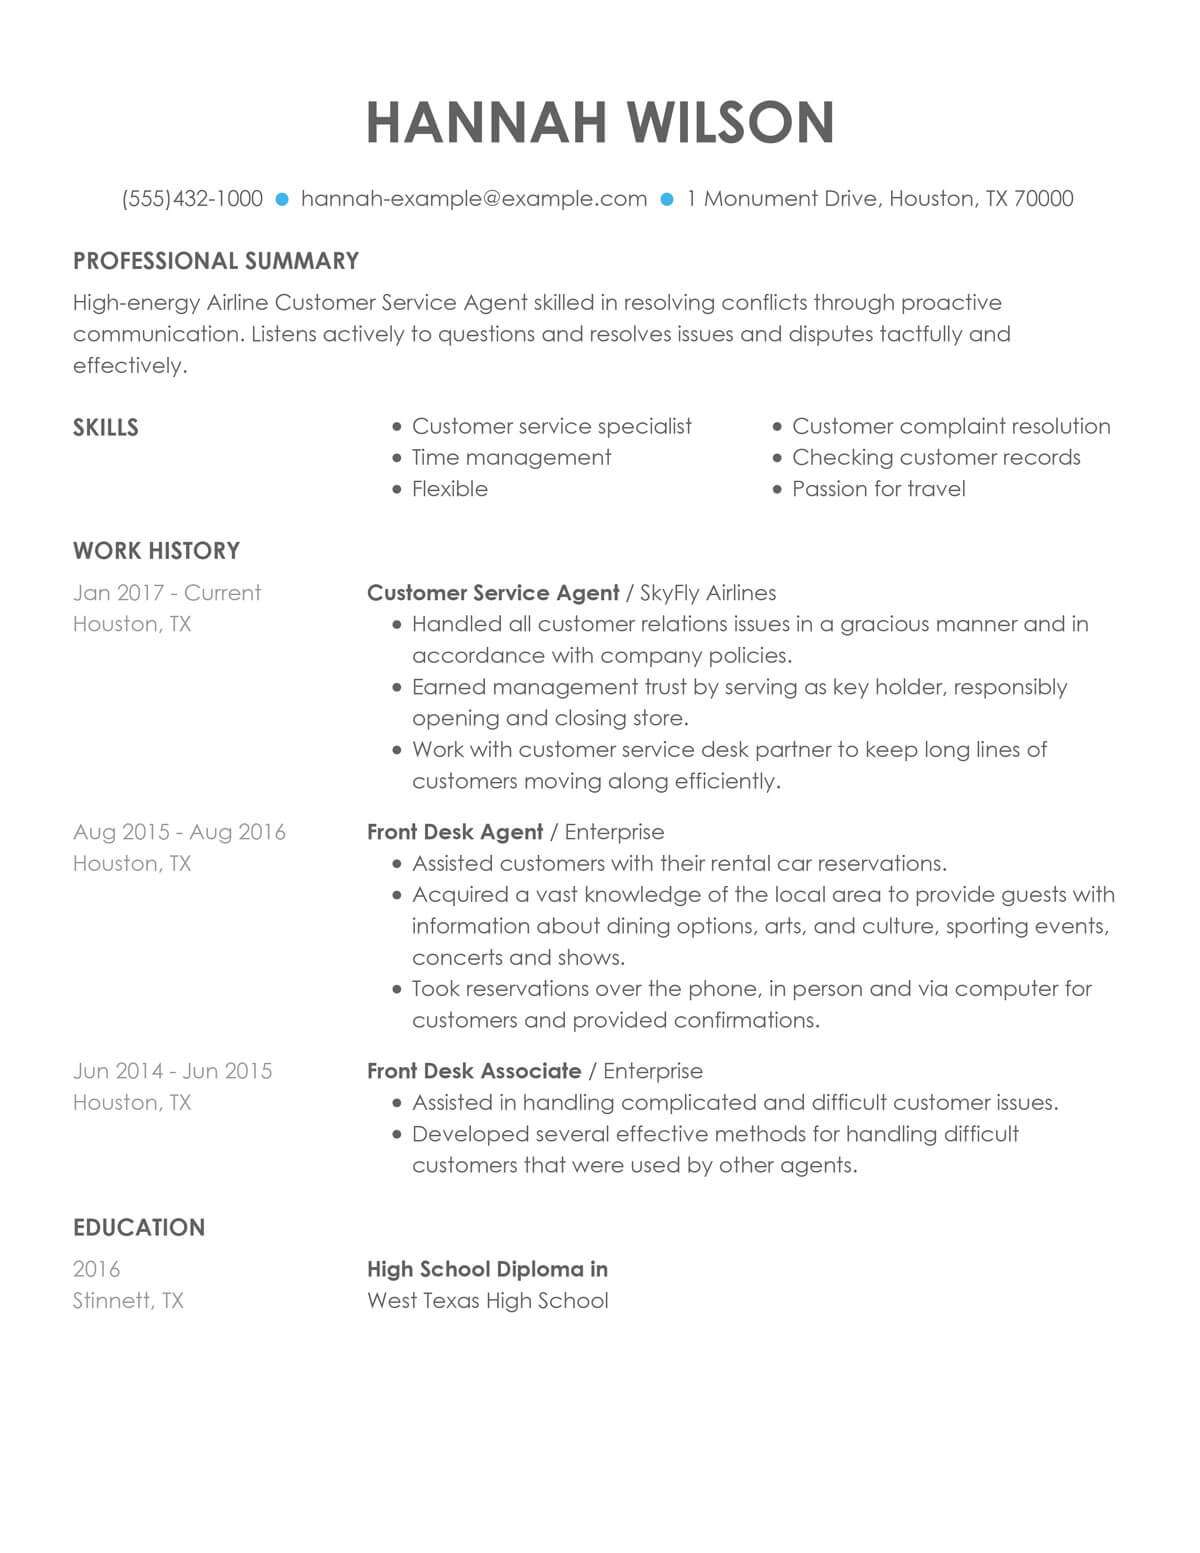 customize our customer representative resume example build service airline agent sample Resume Build Resume Customer Service